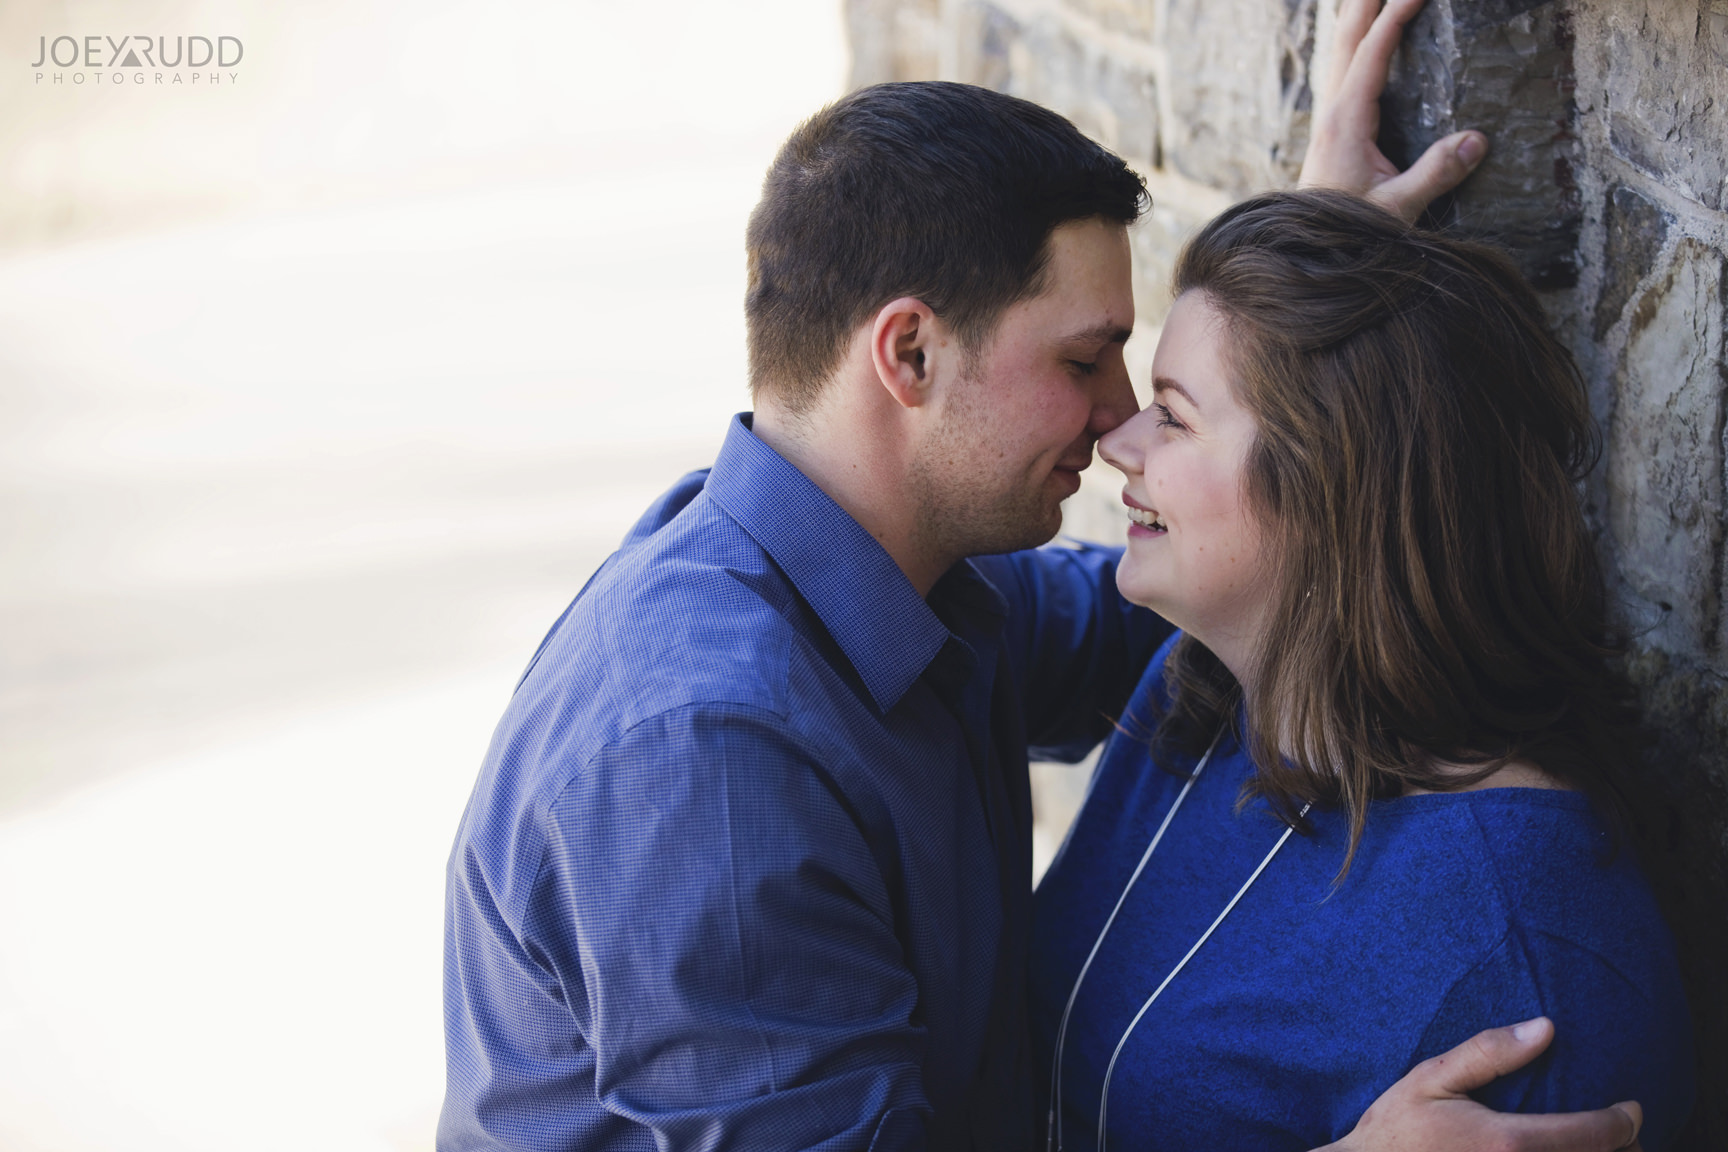 Almonte engagement photography by ottawa wedding photographer joey rudd photography casual